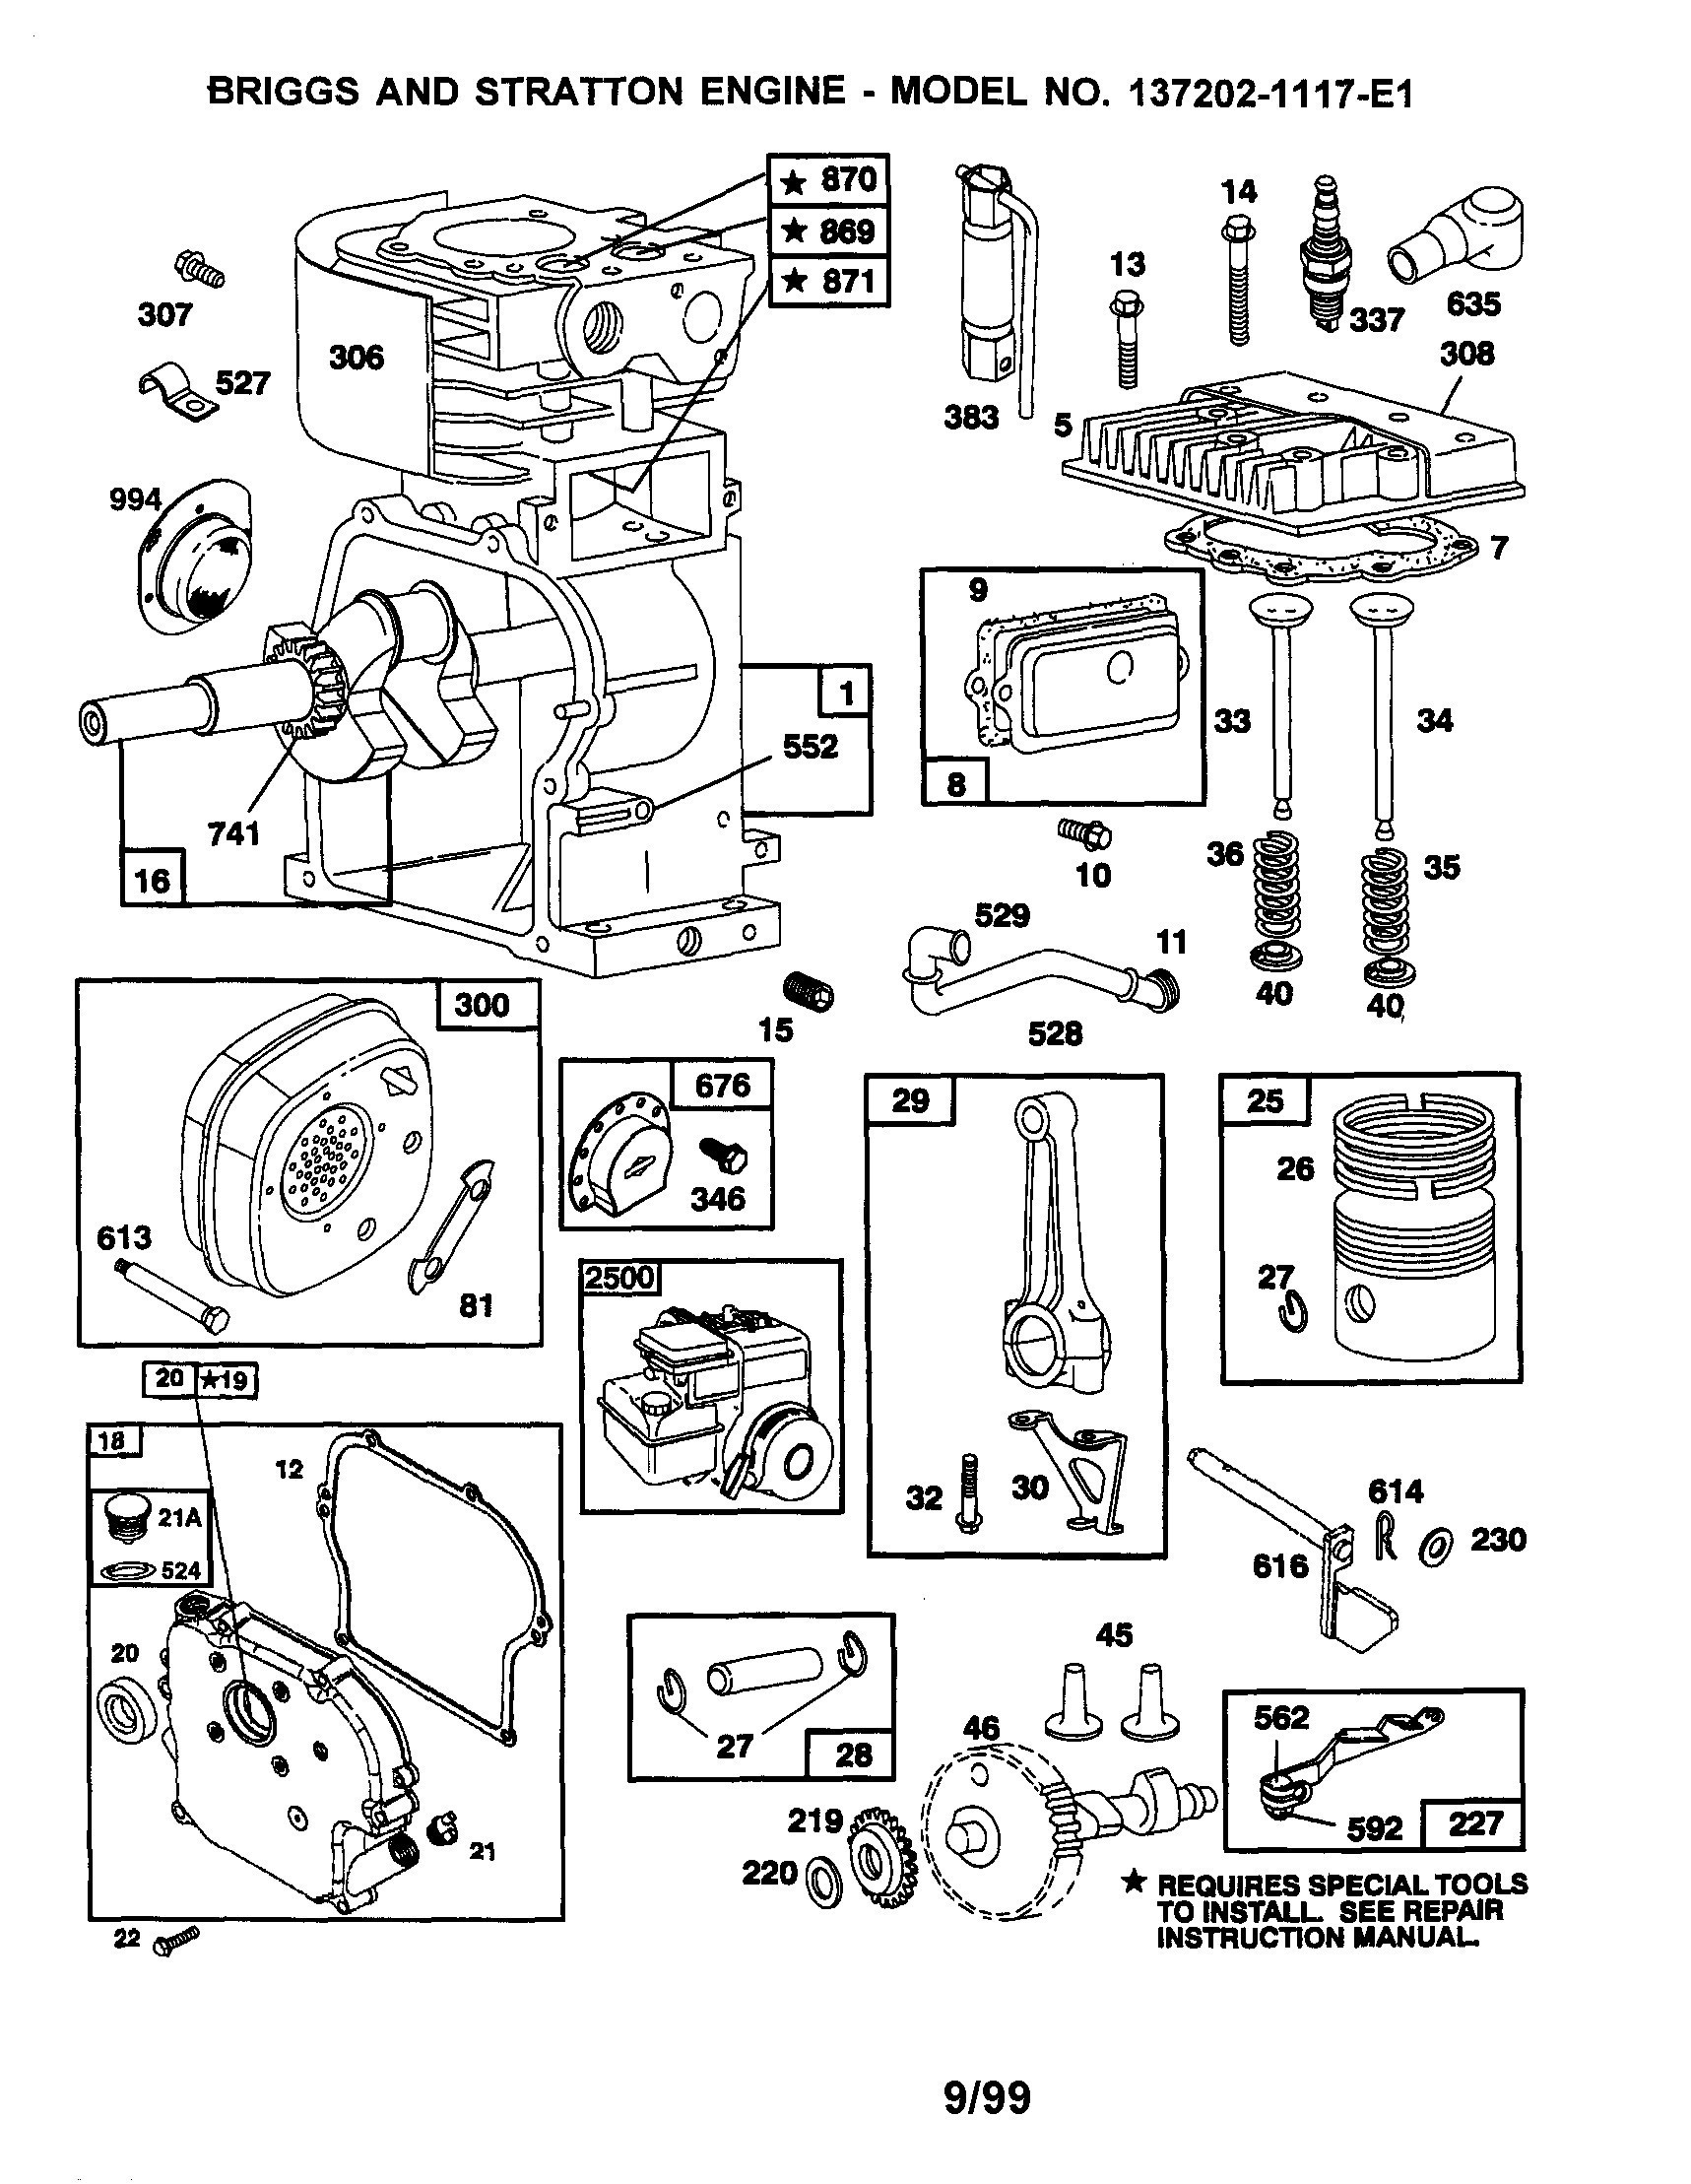 faq engine schematic wiring diagram briggs stratton product wiring briggs and stratton 5hp diagram 190cc engine diagram free car wiring diagrams u2022 rh netwiringdiagram today 8 hp briggs stratton engine